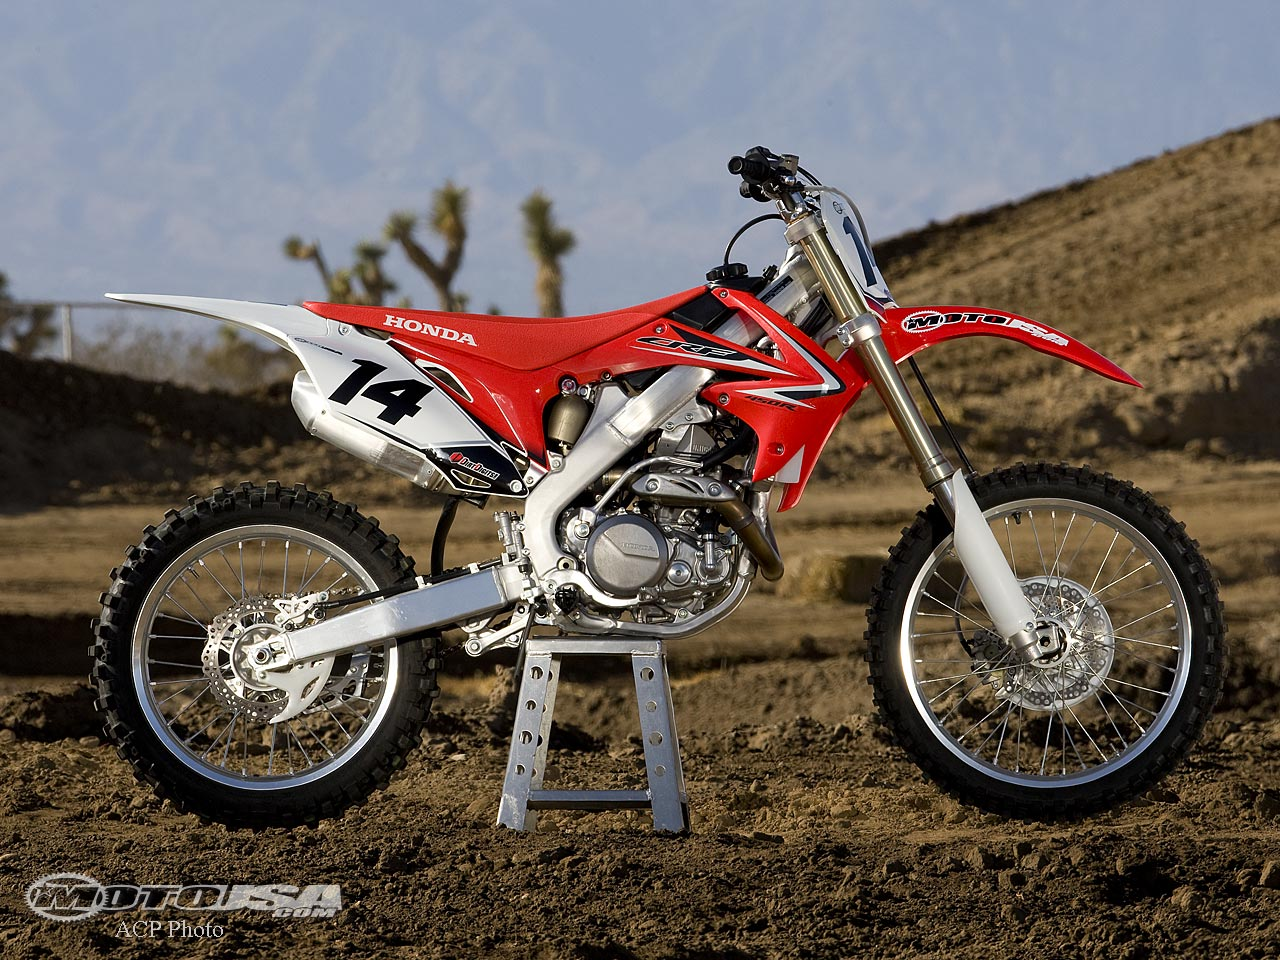 2009 Honda CRF 450 X: pics, specs and information - onlymotorbikes.com